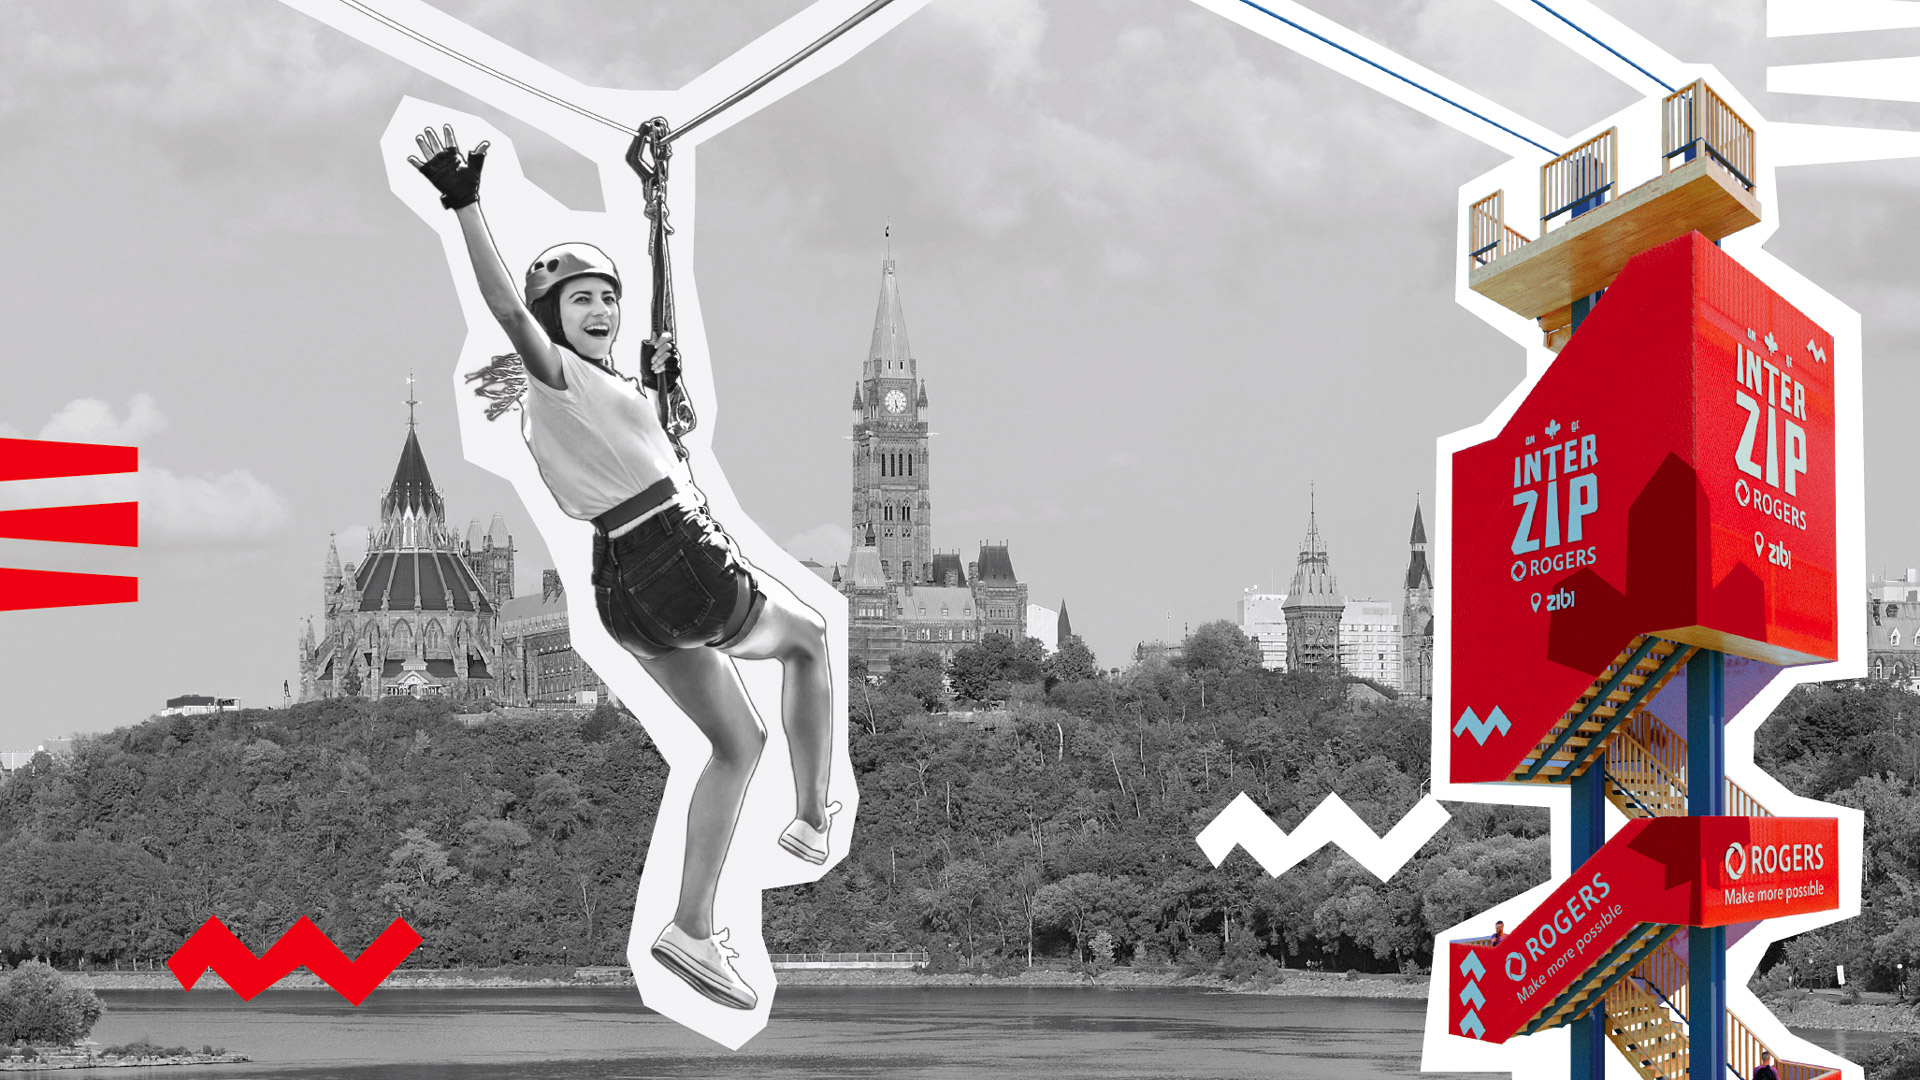 A black and white collage of a woman on a zipline, crossing the Ottawa River from Quebec to Ontario